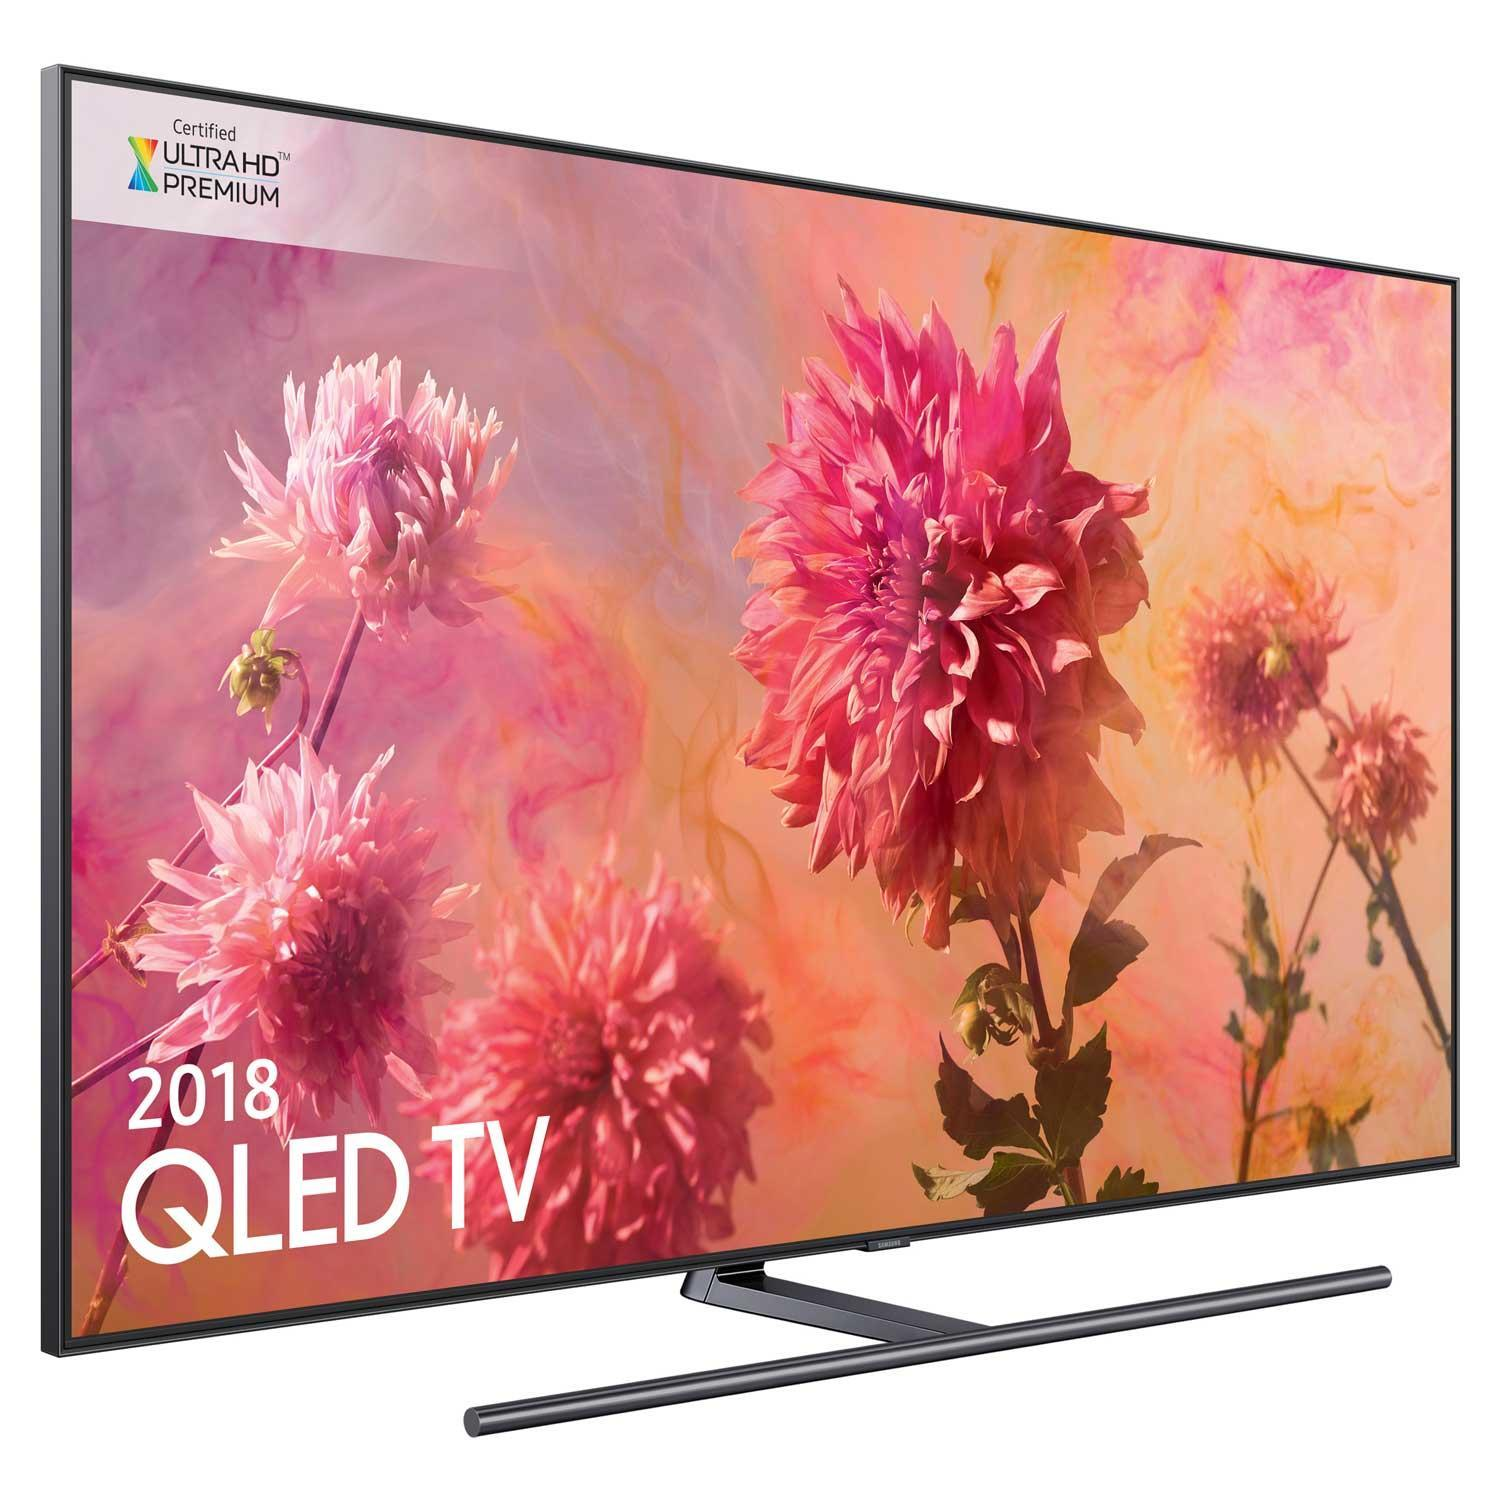 Samsung QE65Q9FN 65 inch QLED Ultra HD Premium HDR 2000 Smart TV